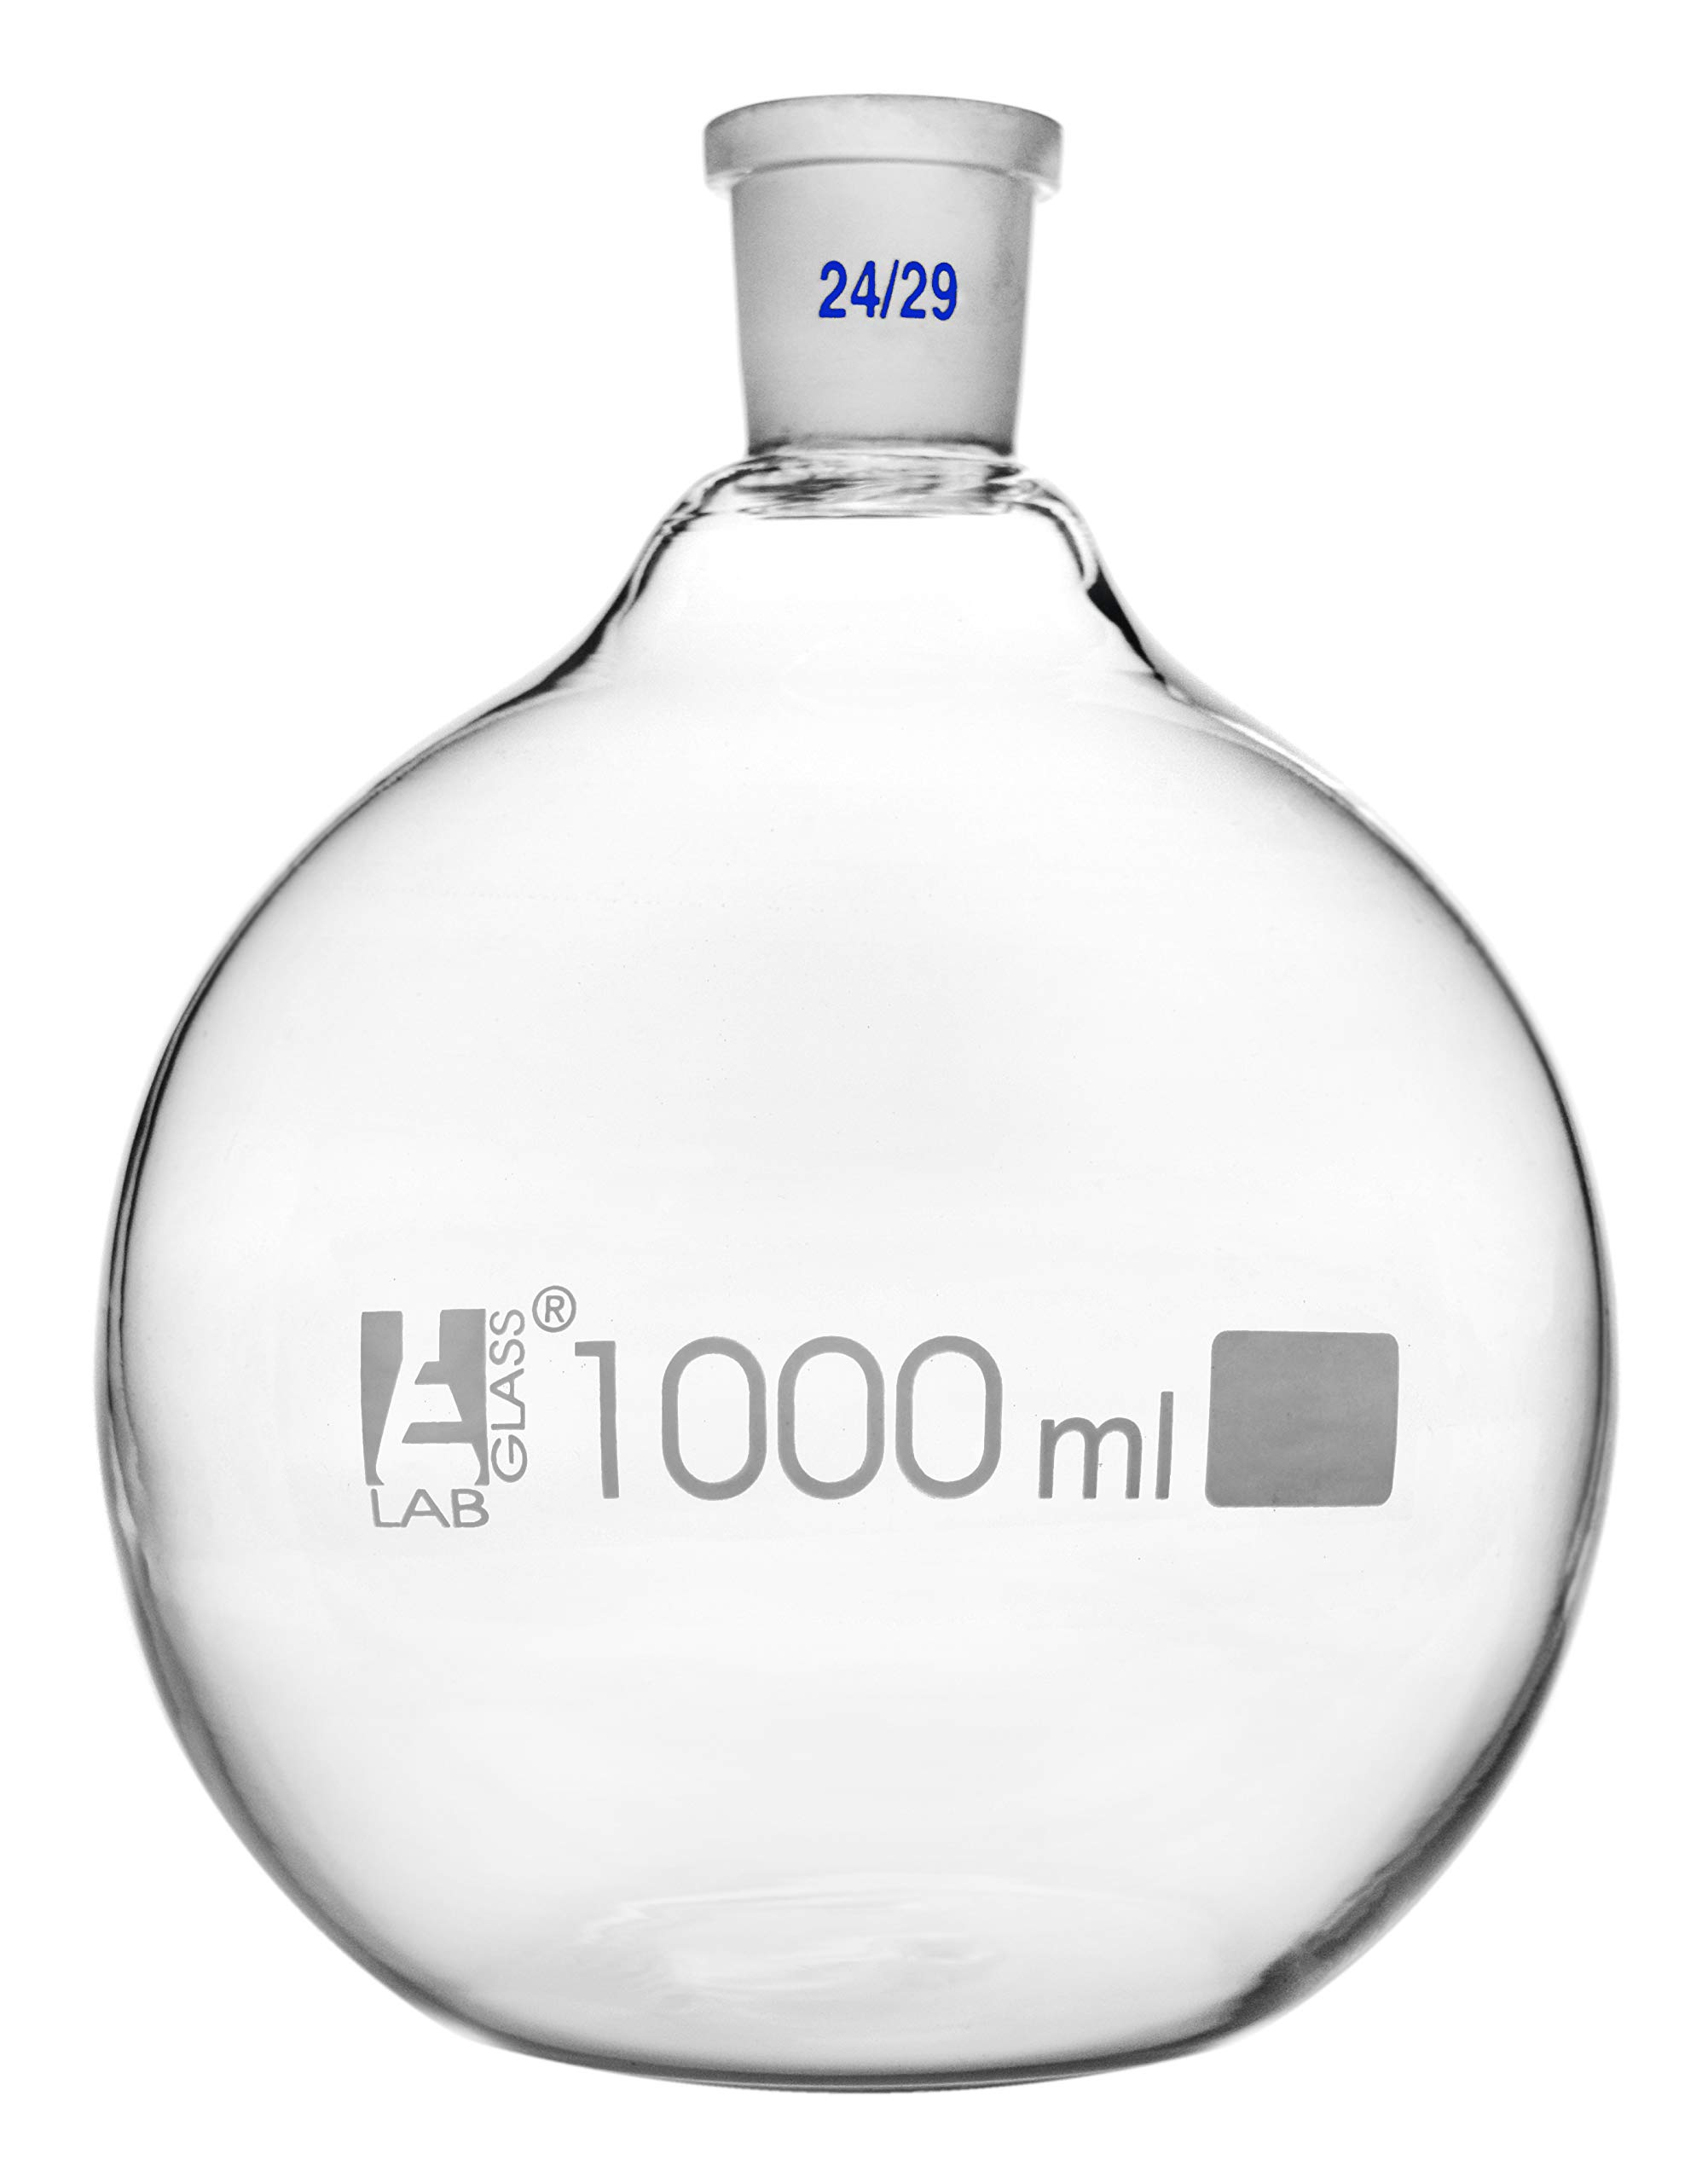 Florence Boiling Flask, 1000ml - 24/29 Joint, Interchangeable - Borosilicate Glass - Flat Bottom, Short Neck - Eisco Labs